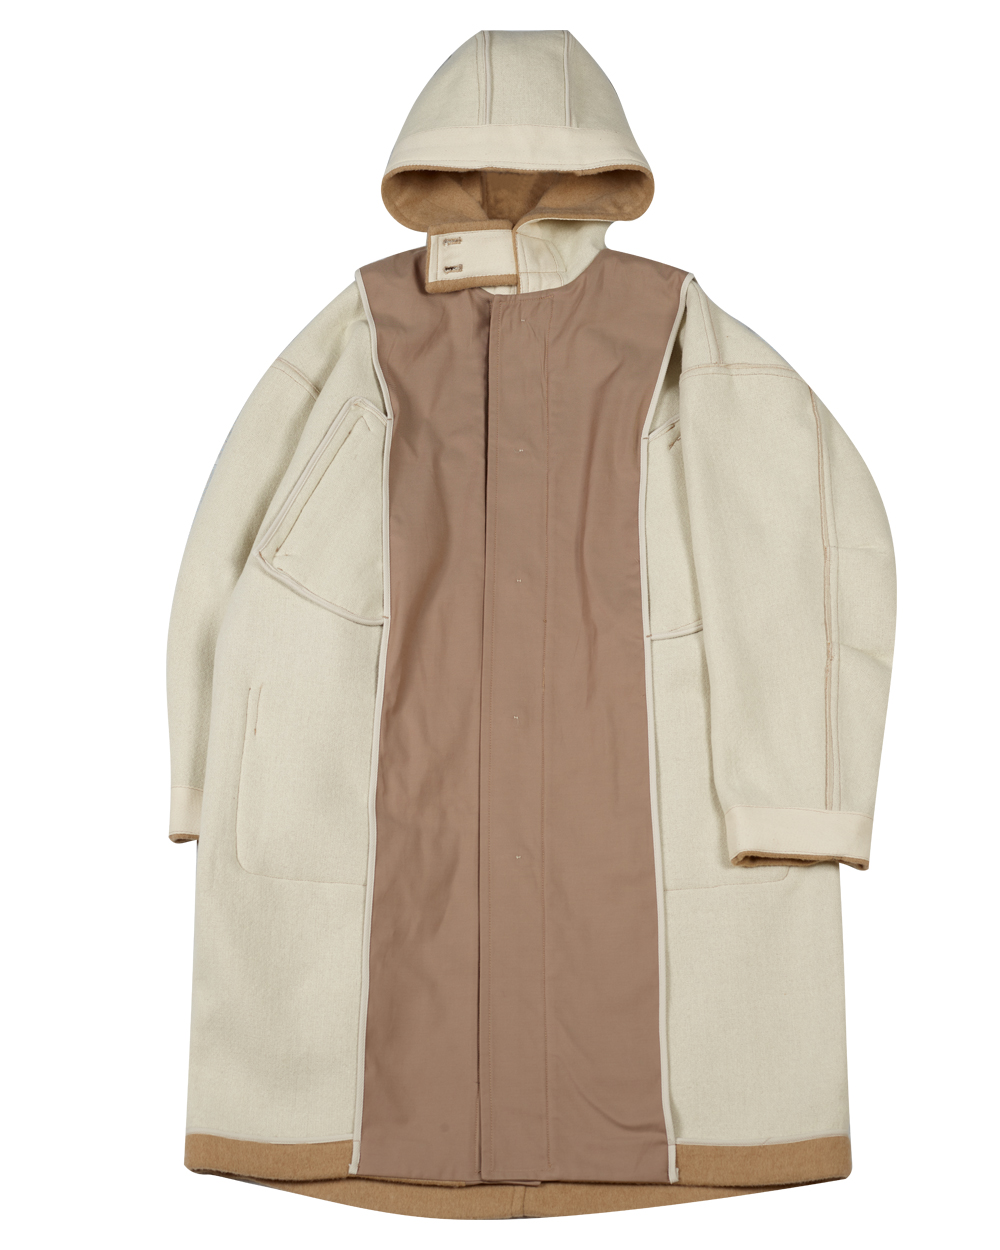 HOODED+WOOL+COAT+BEIGE+INSIDE.jpg